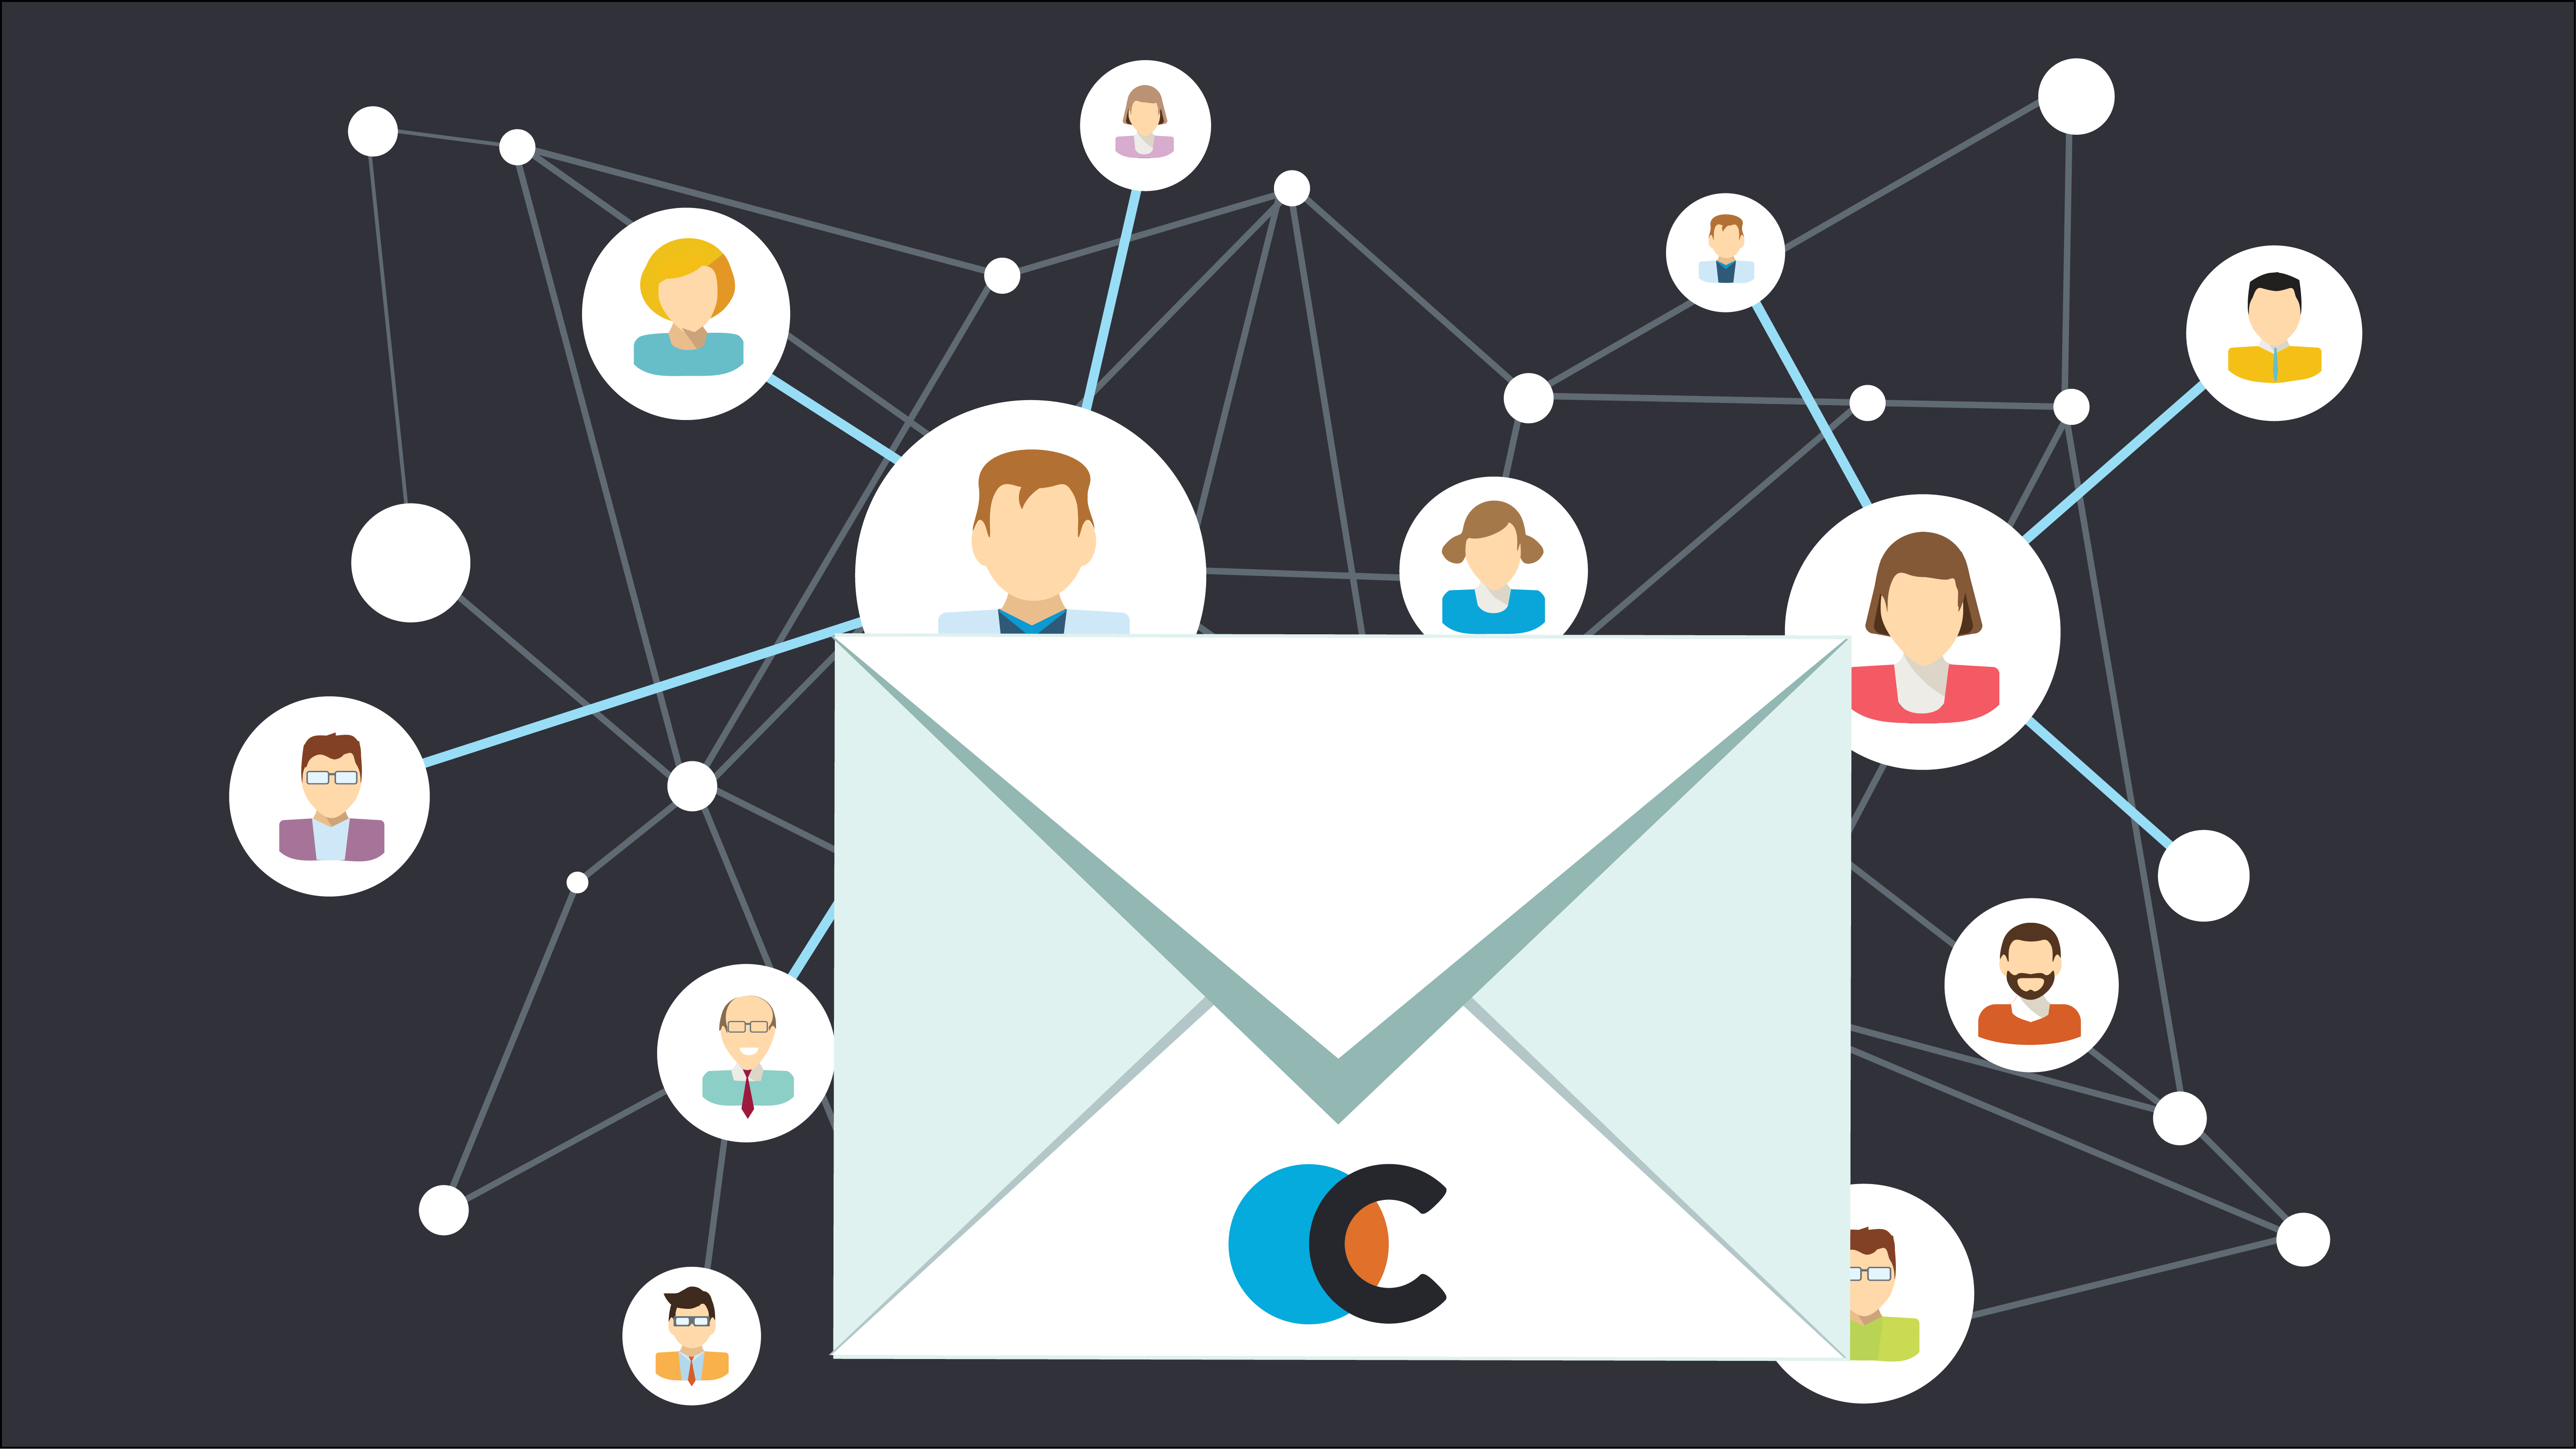 Connexica newsletter - a envelope witht the connexica logo on and people in circles connected